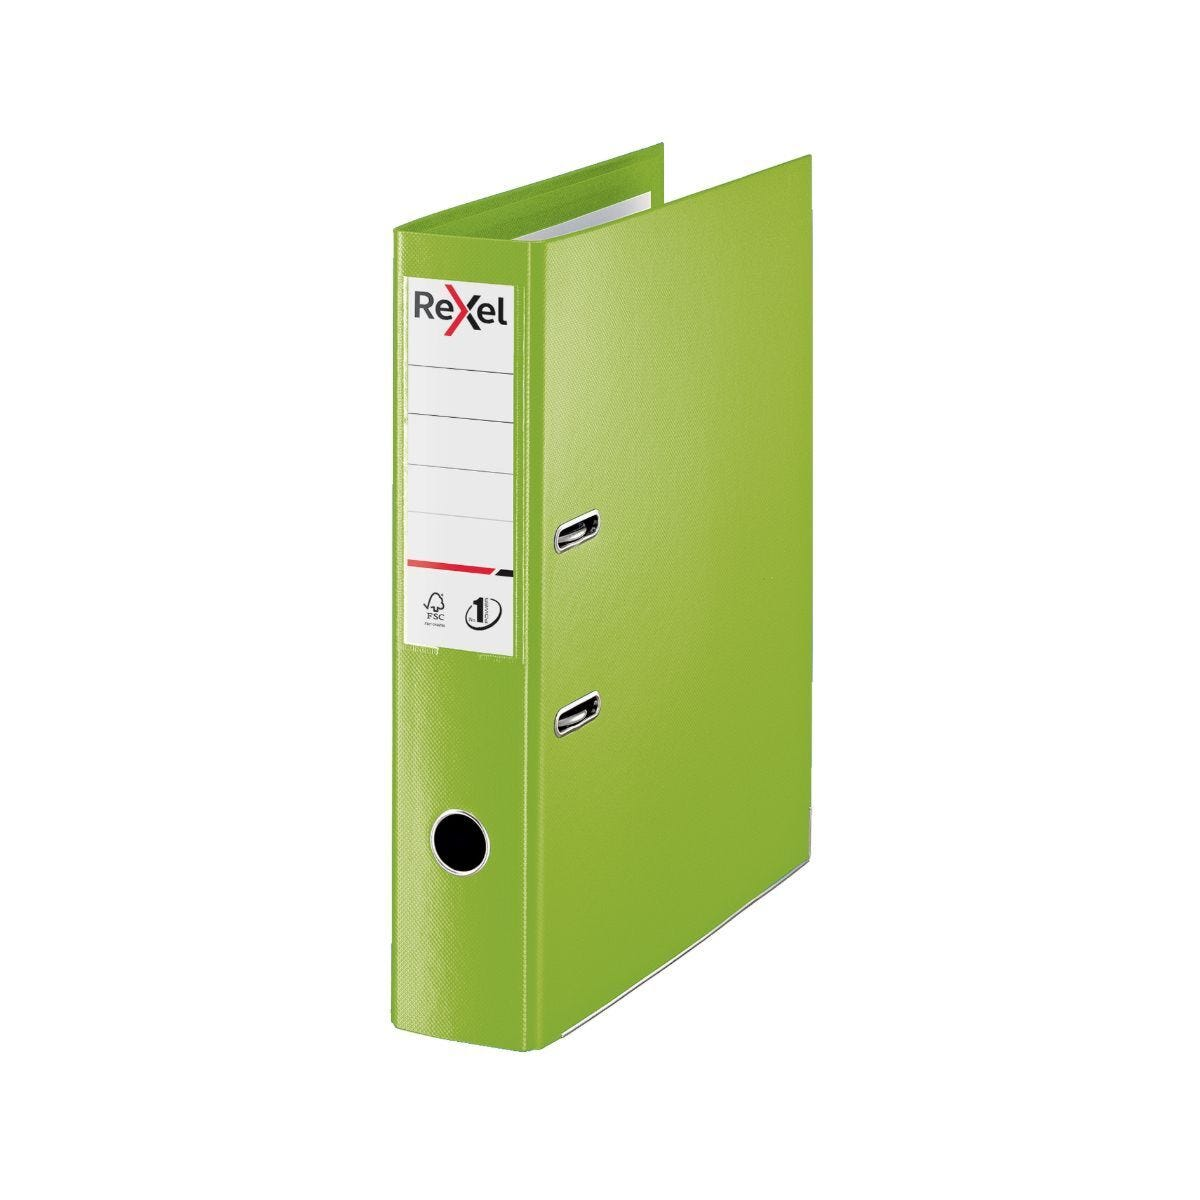 Rexel Choices Lever Arch File Foolscap PP 75mm Pack of 10 Green